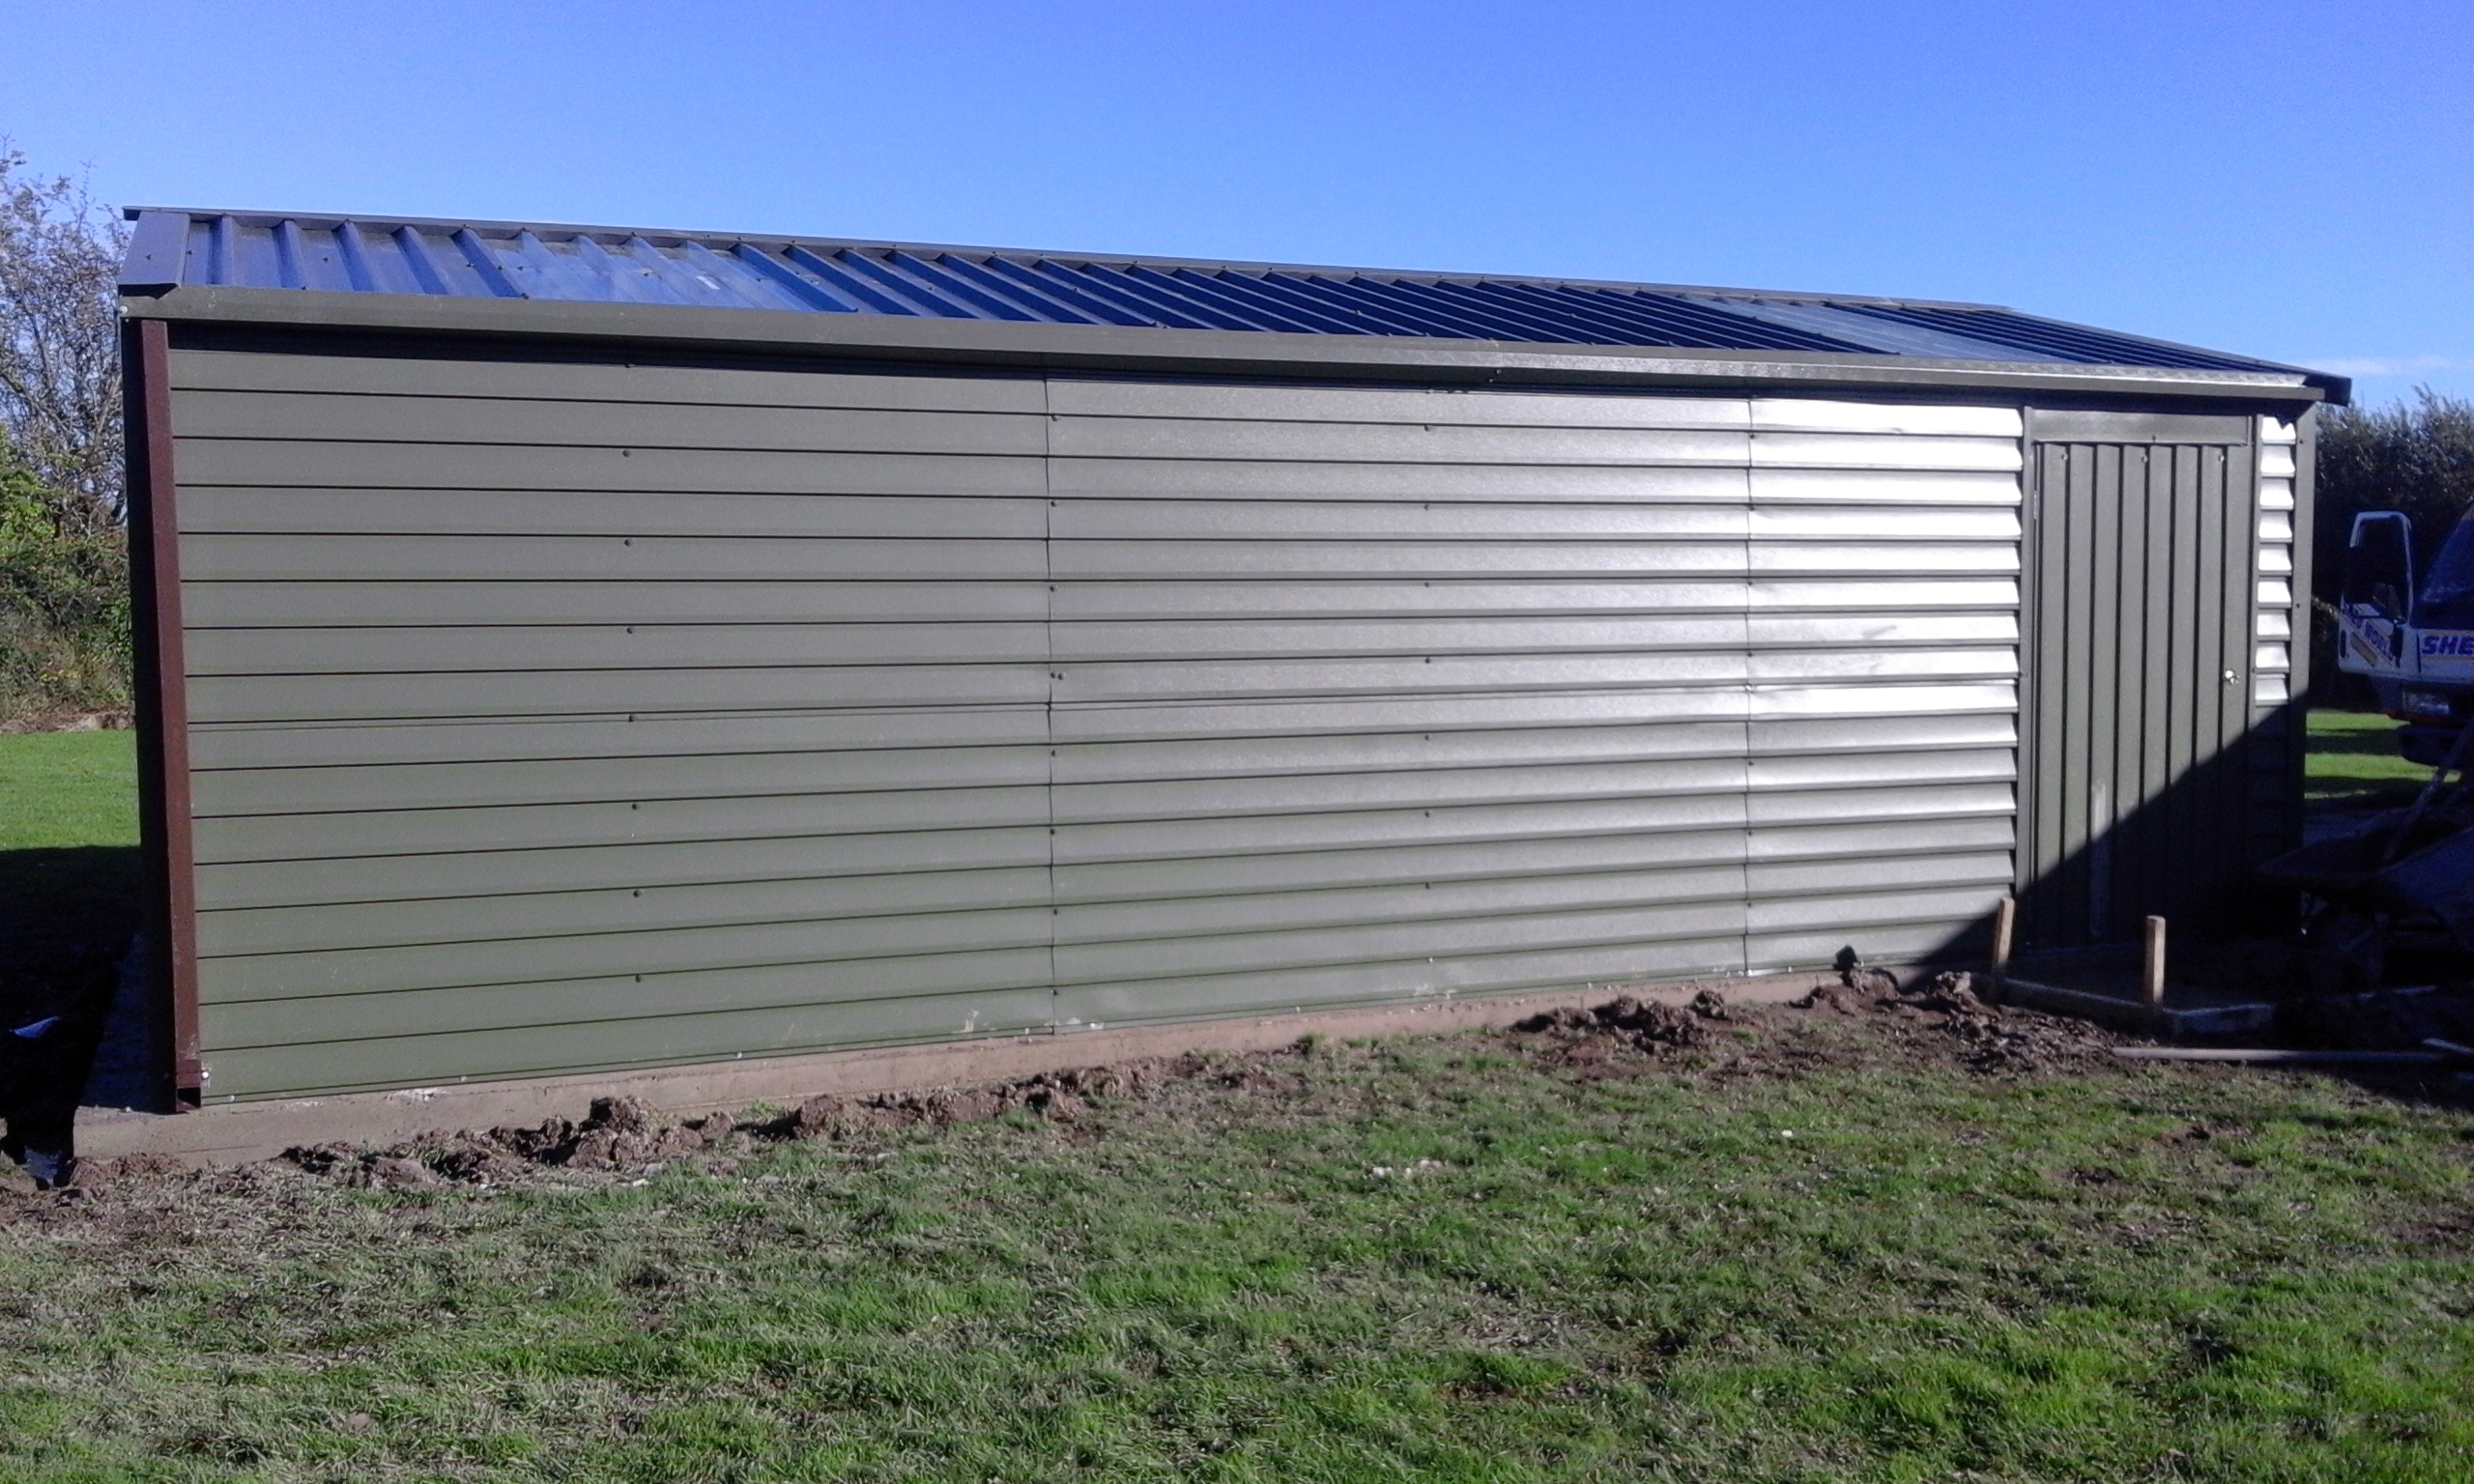 photos service our on garage see of some image metal call steel click to an buildings below